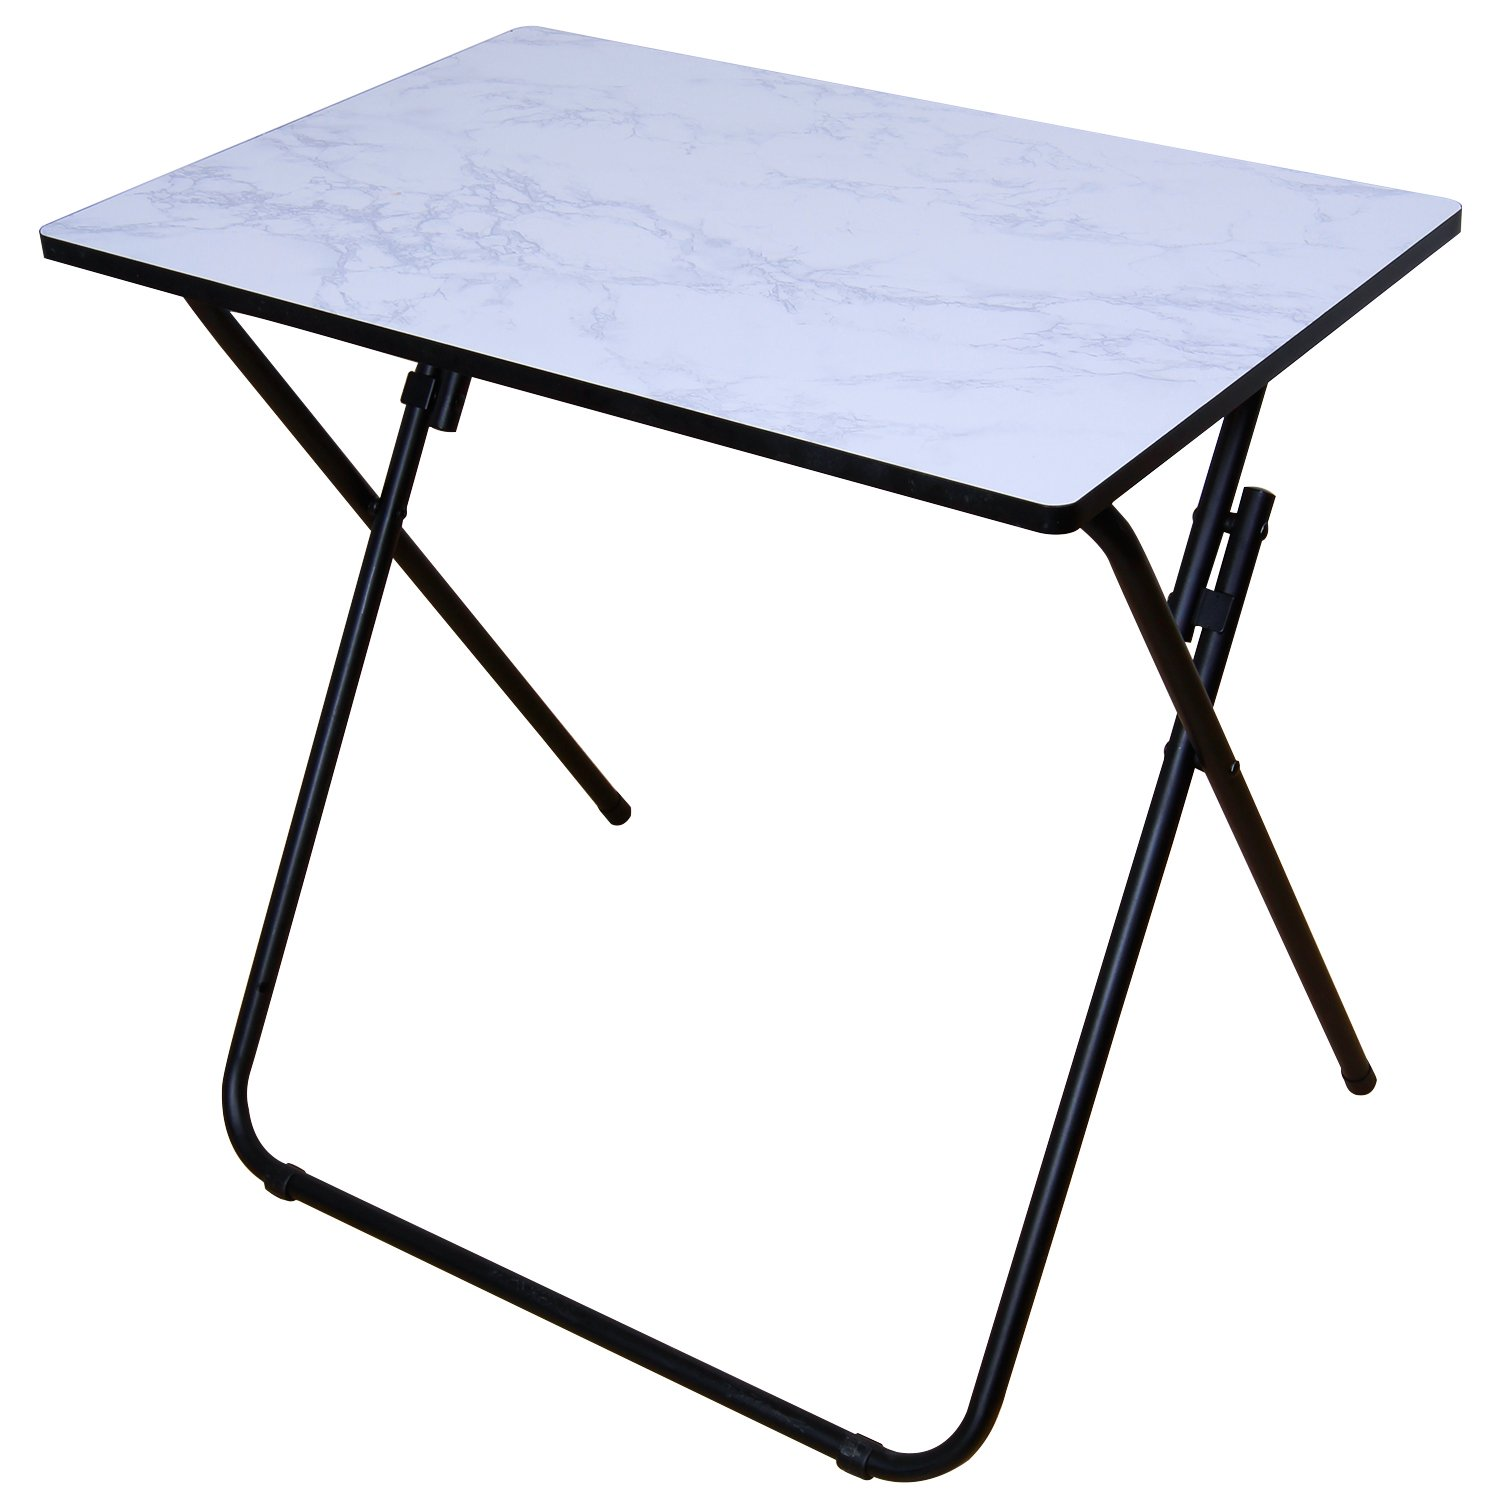 Lifewit Folding Utility Table, Wooden End Table, Snack Table for Patio / Garden / Outdoor / Indoor, White (Stainless_Steel)